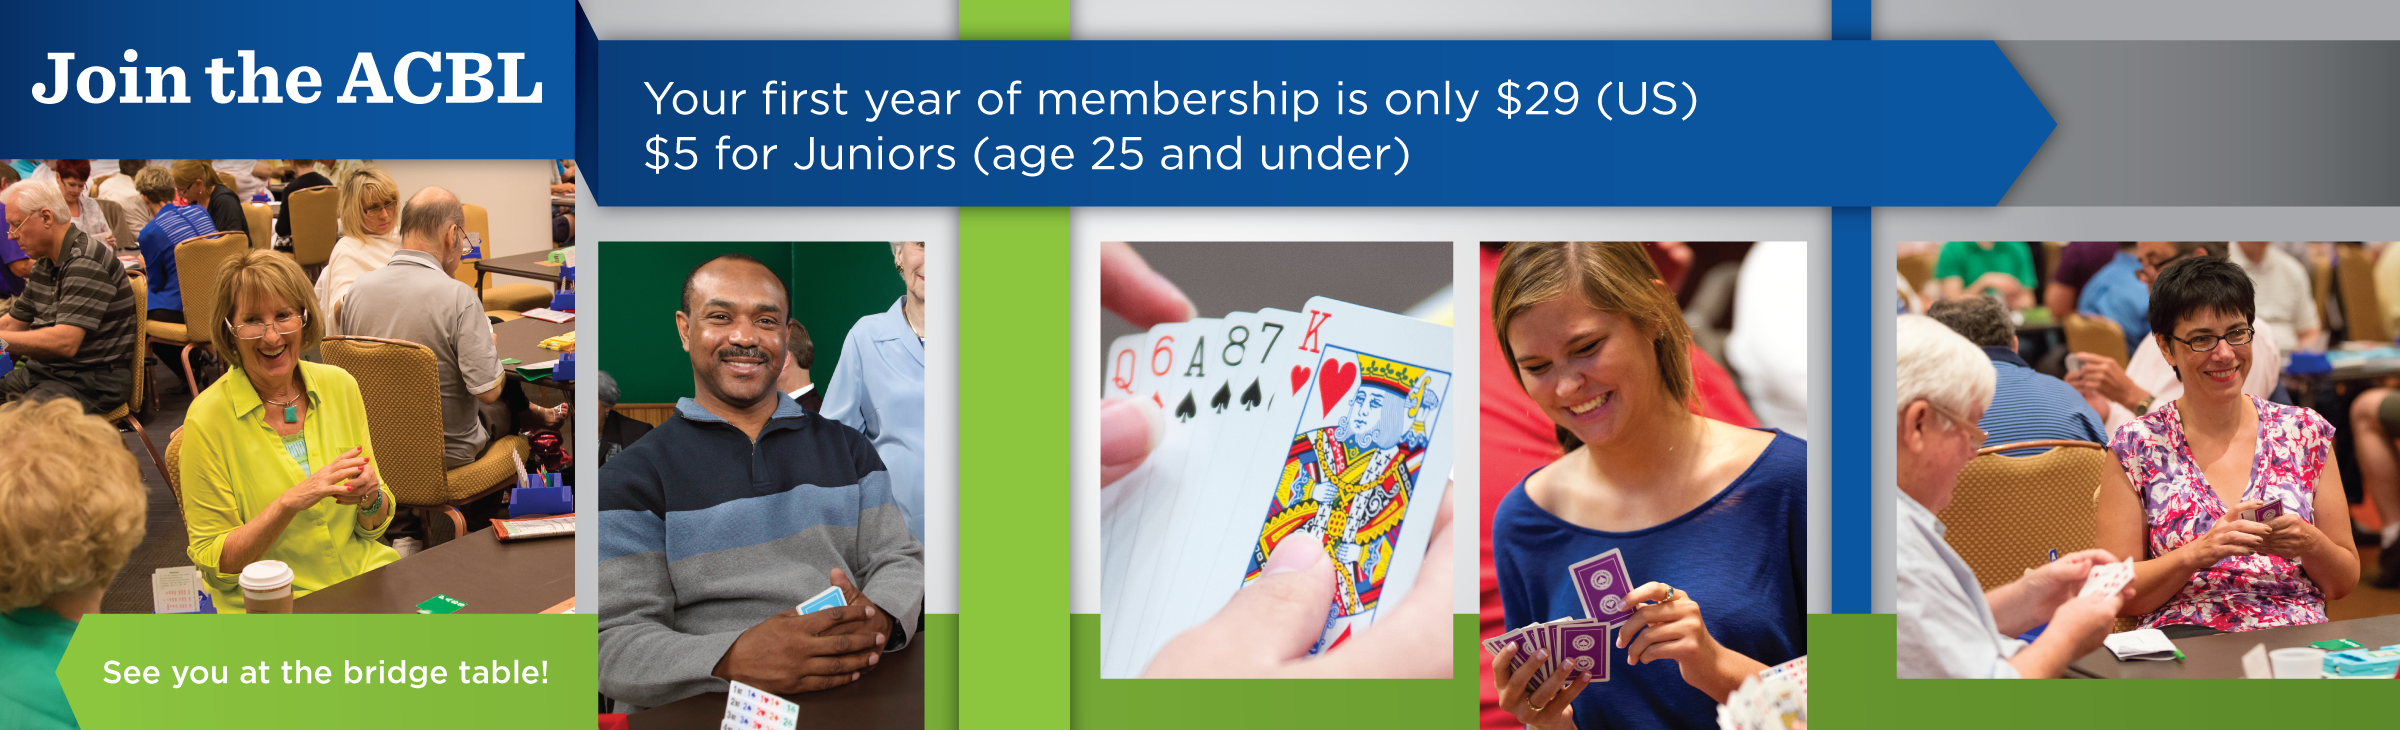 Join the ACBL! Your first year membership is only $29 (US).